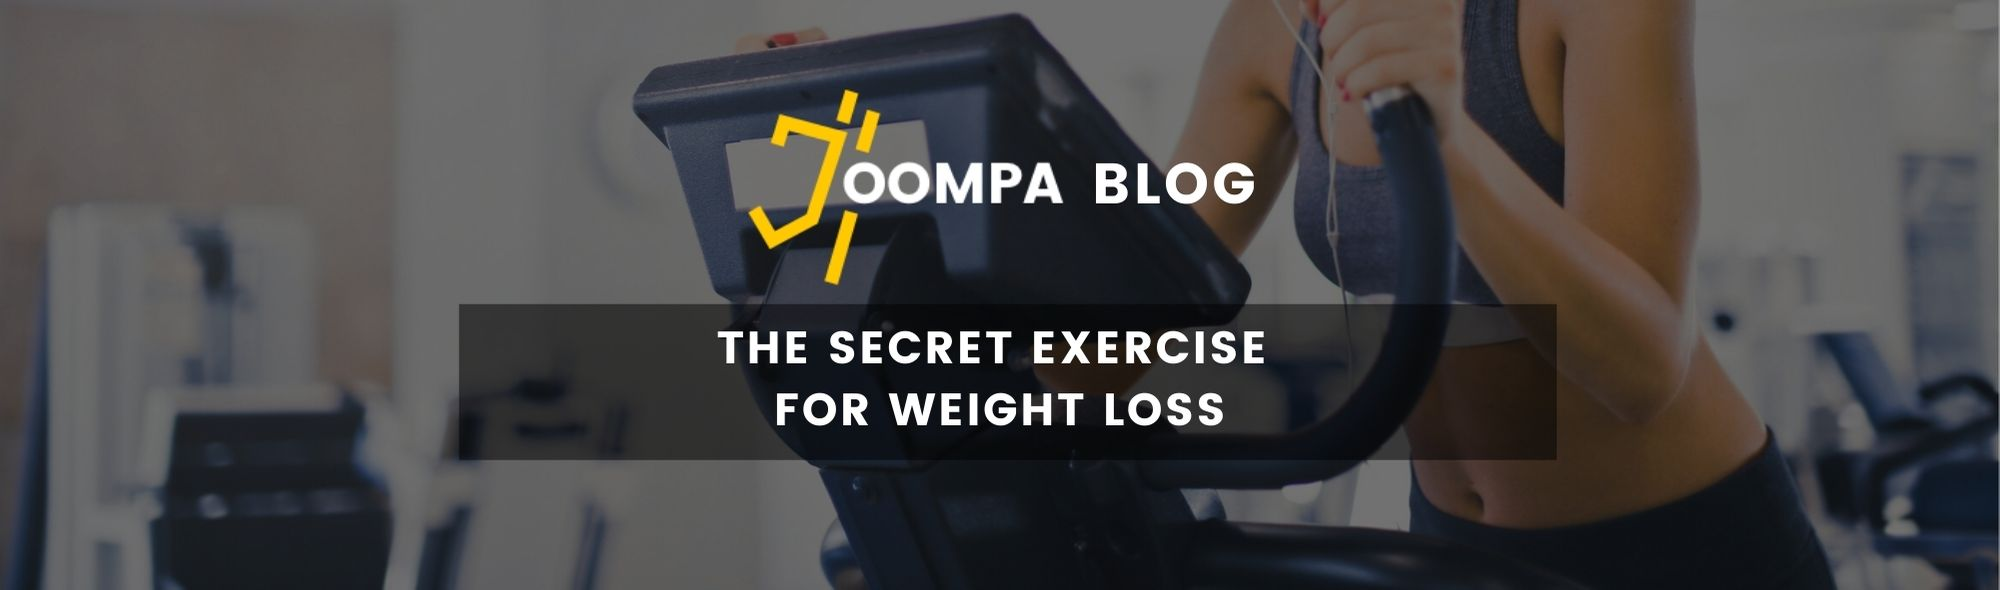 The Secret Exercise for Weight Loss